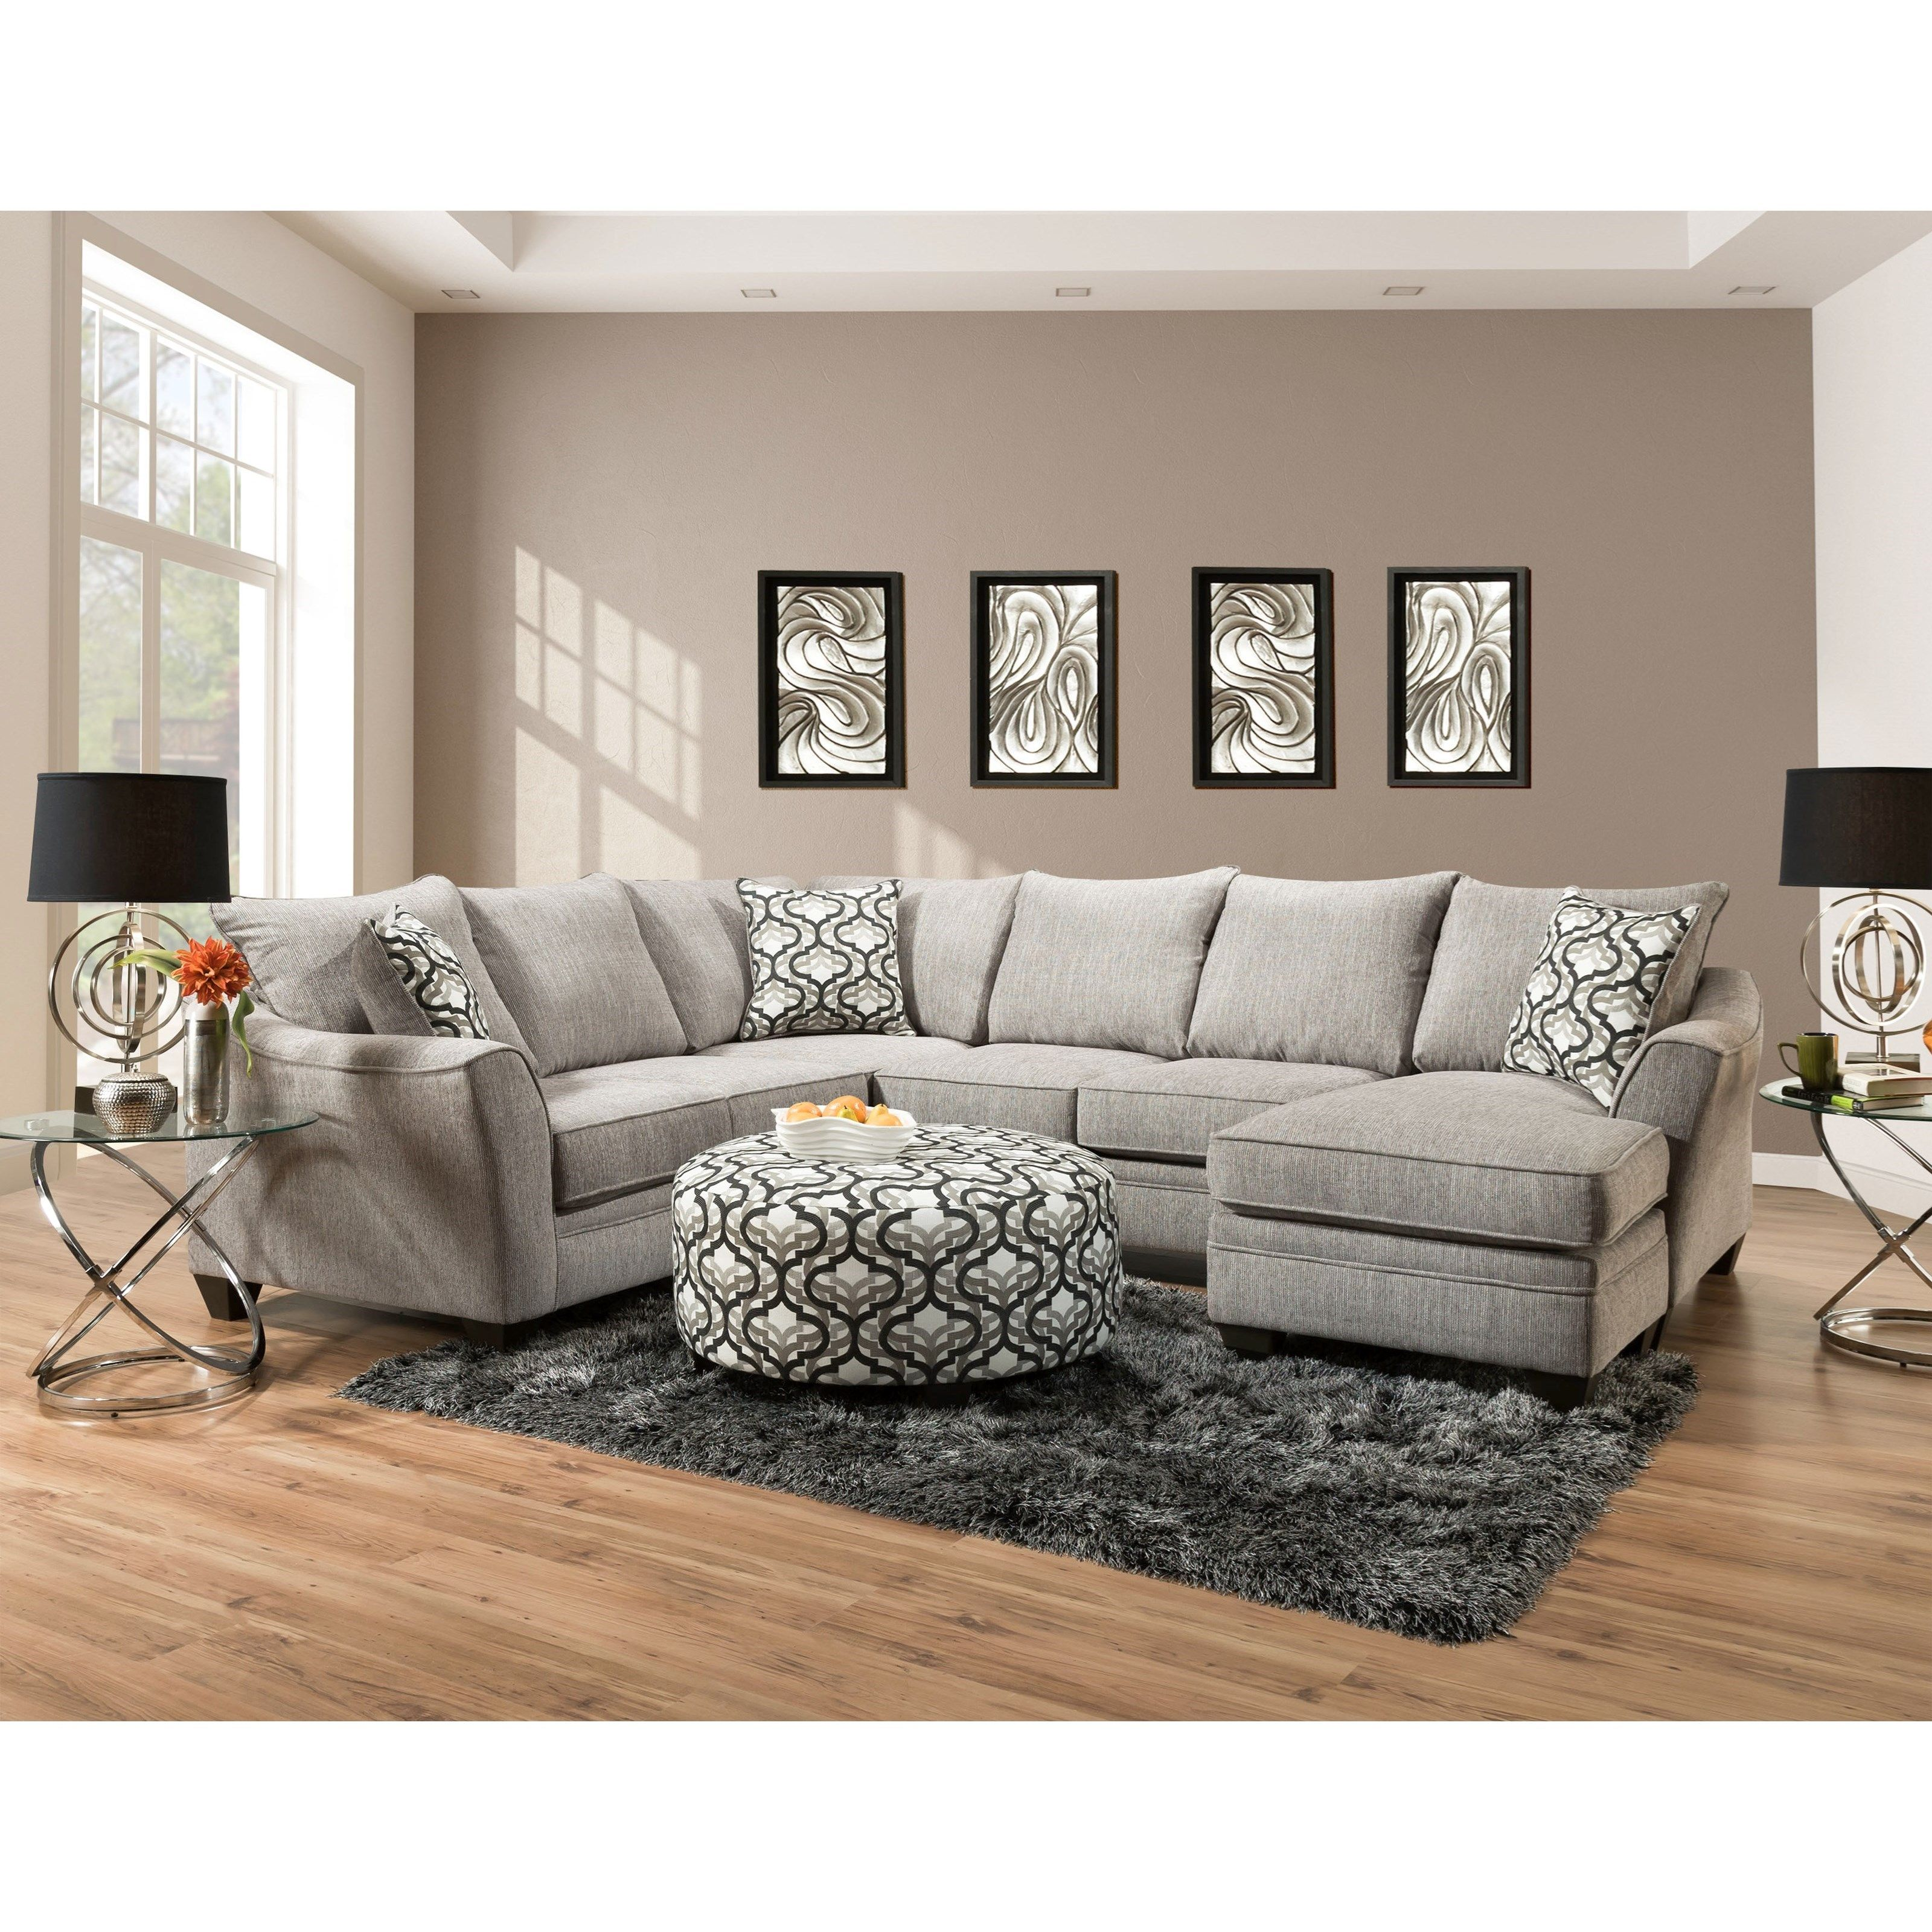 4810 5 Seat Sectional Sofa With Chaise By Peak Living Sectional